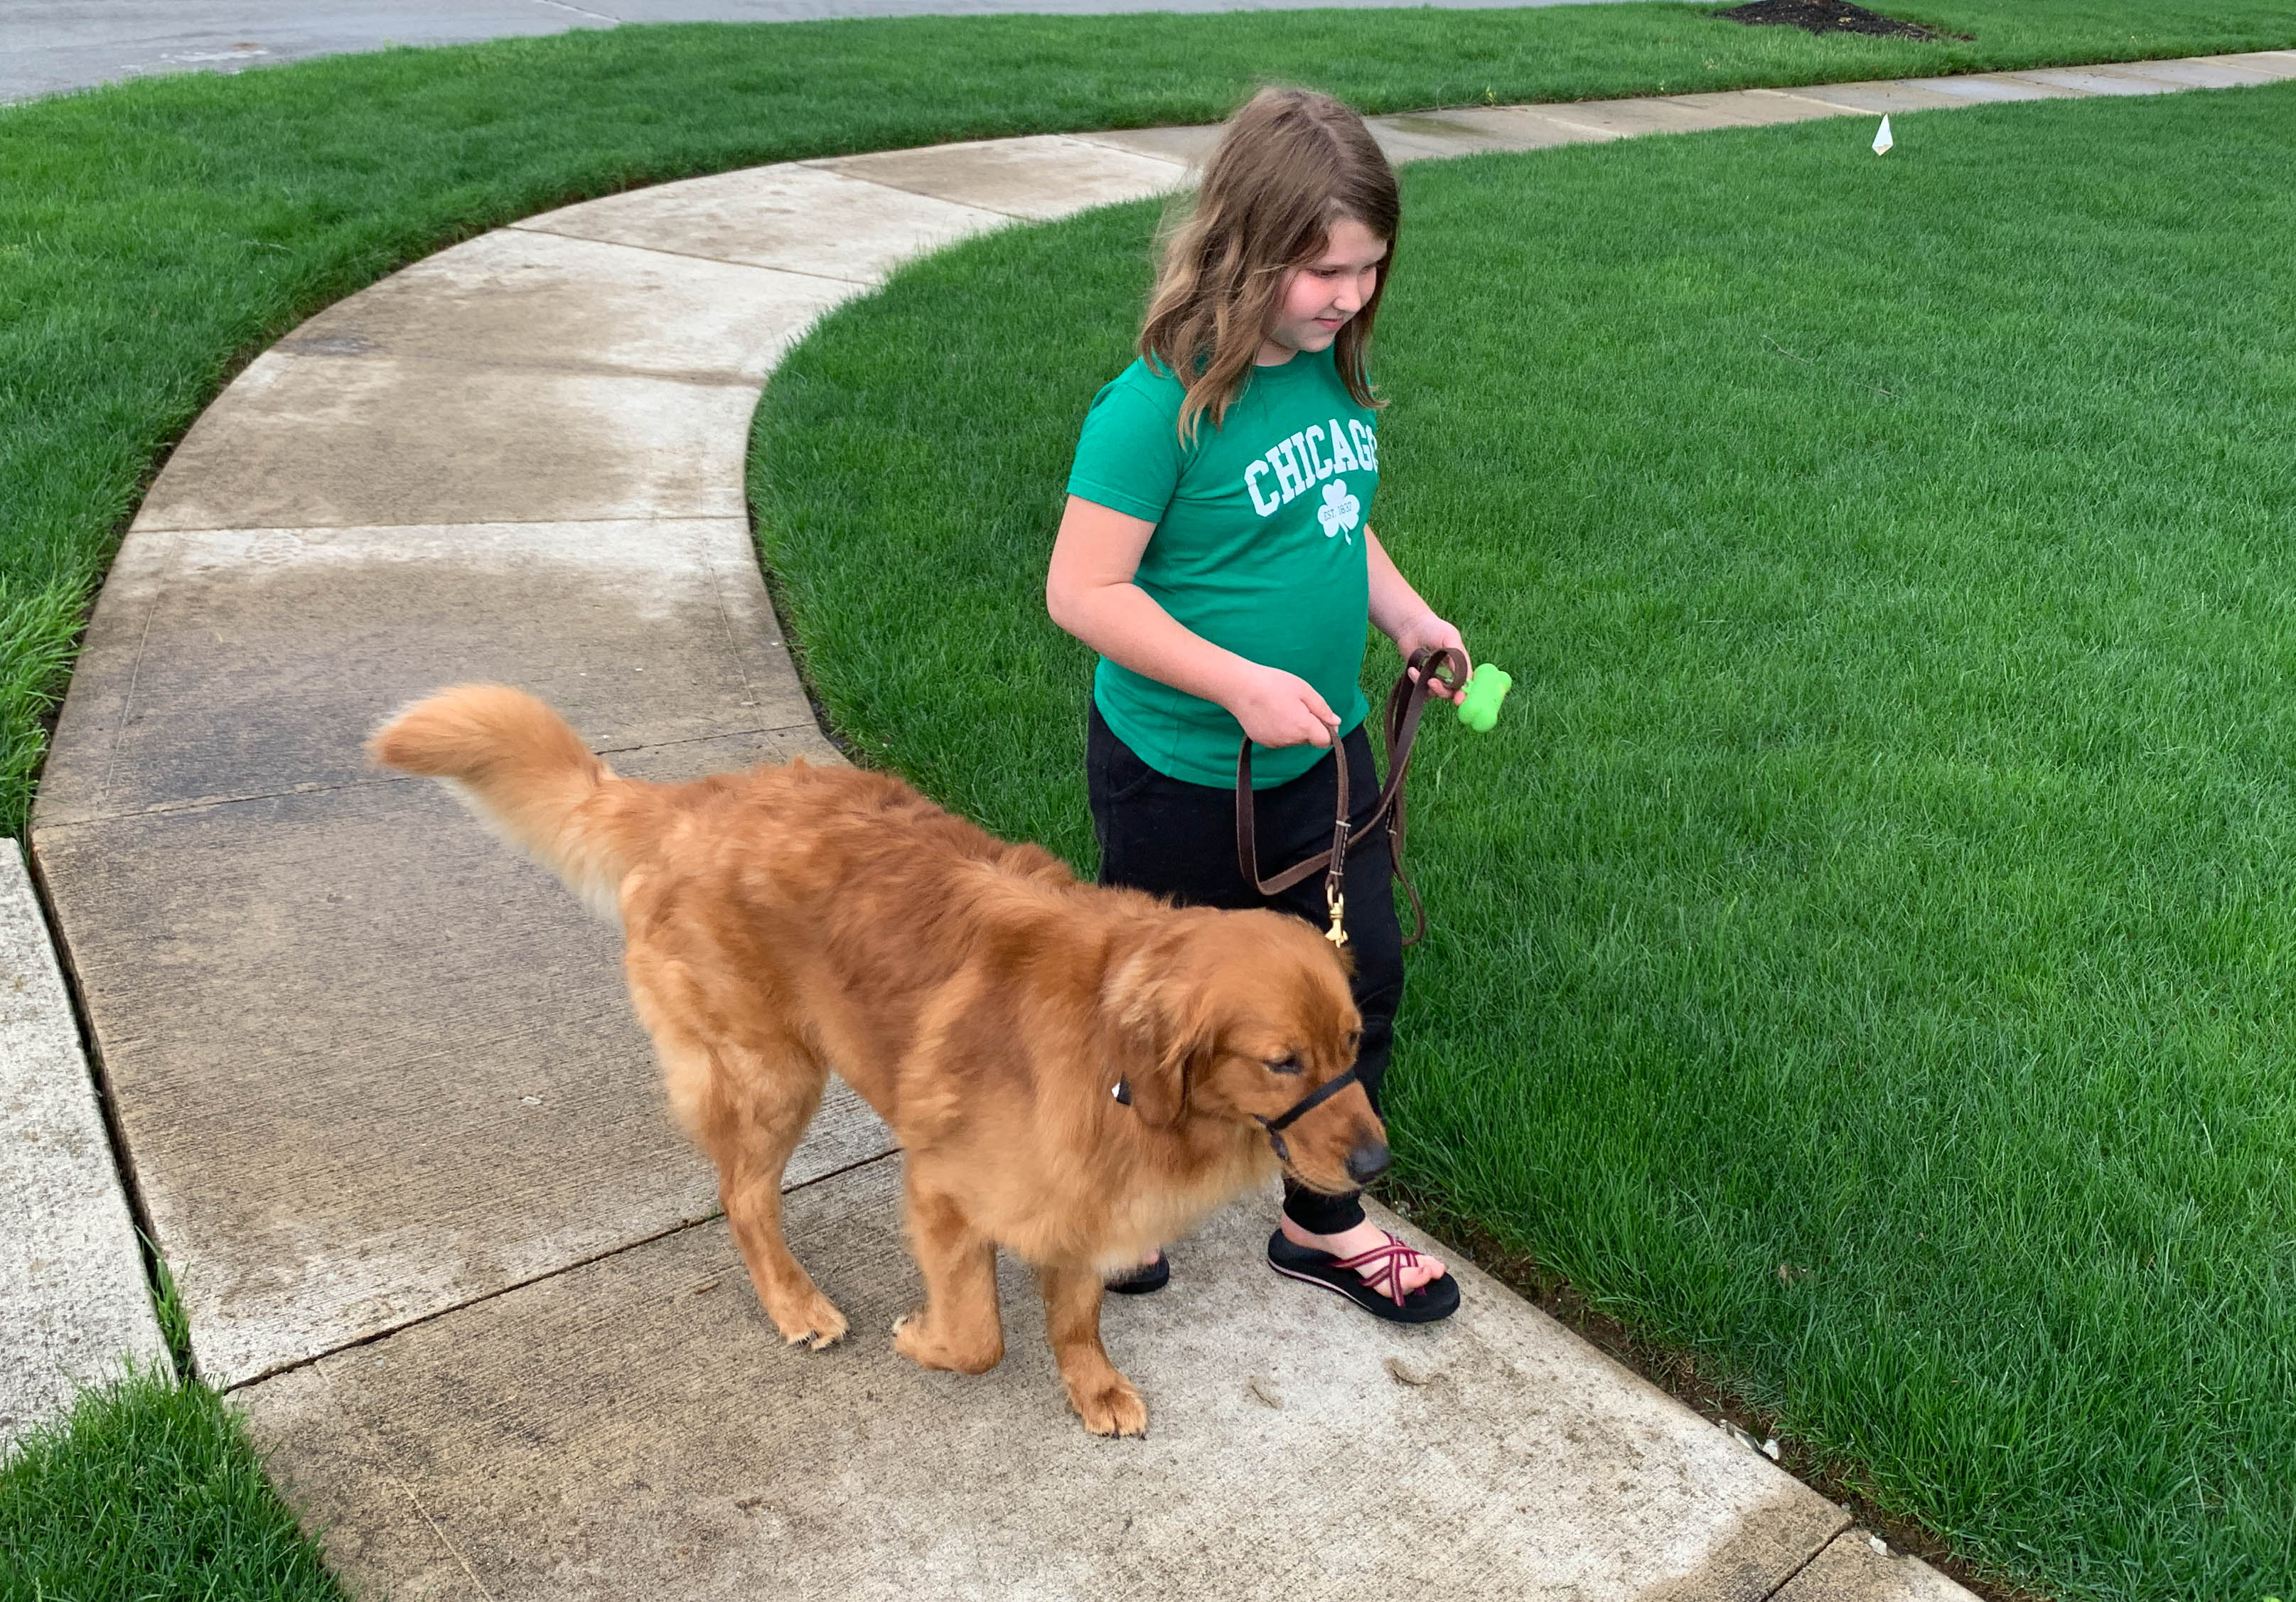 These Dog Breeds Pose the Highest Risk of Hurting Children